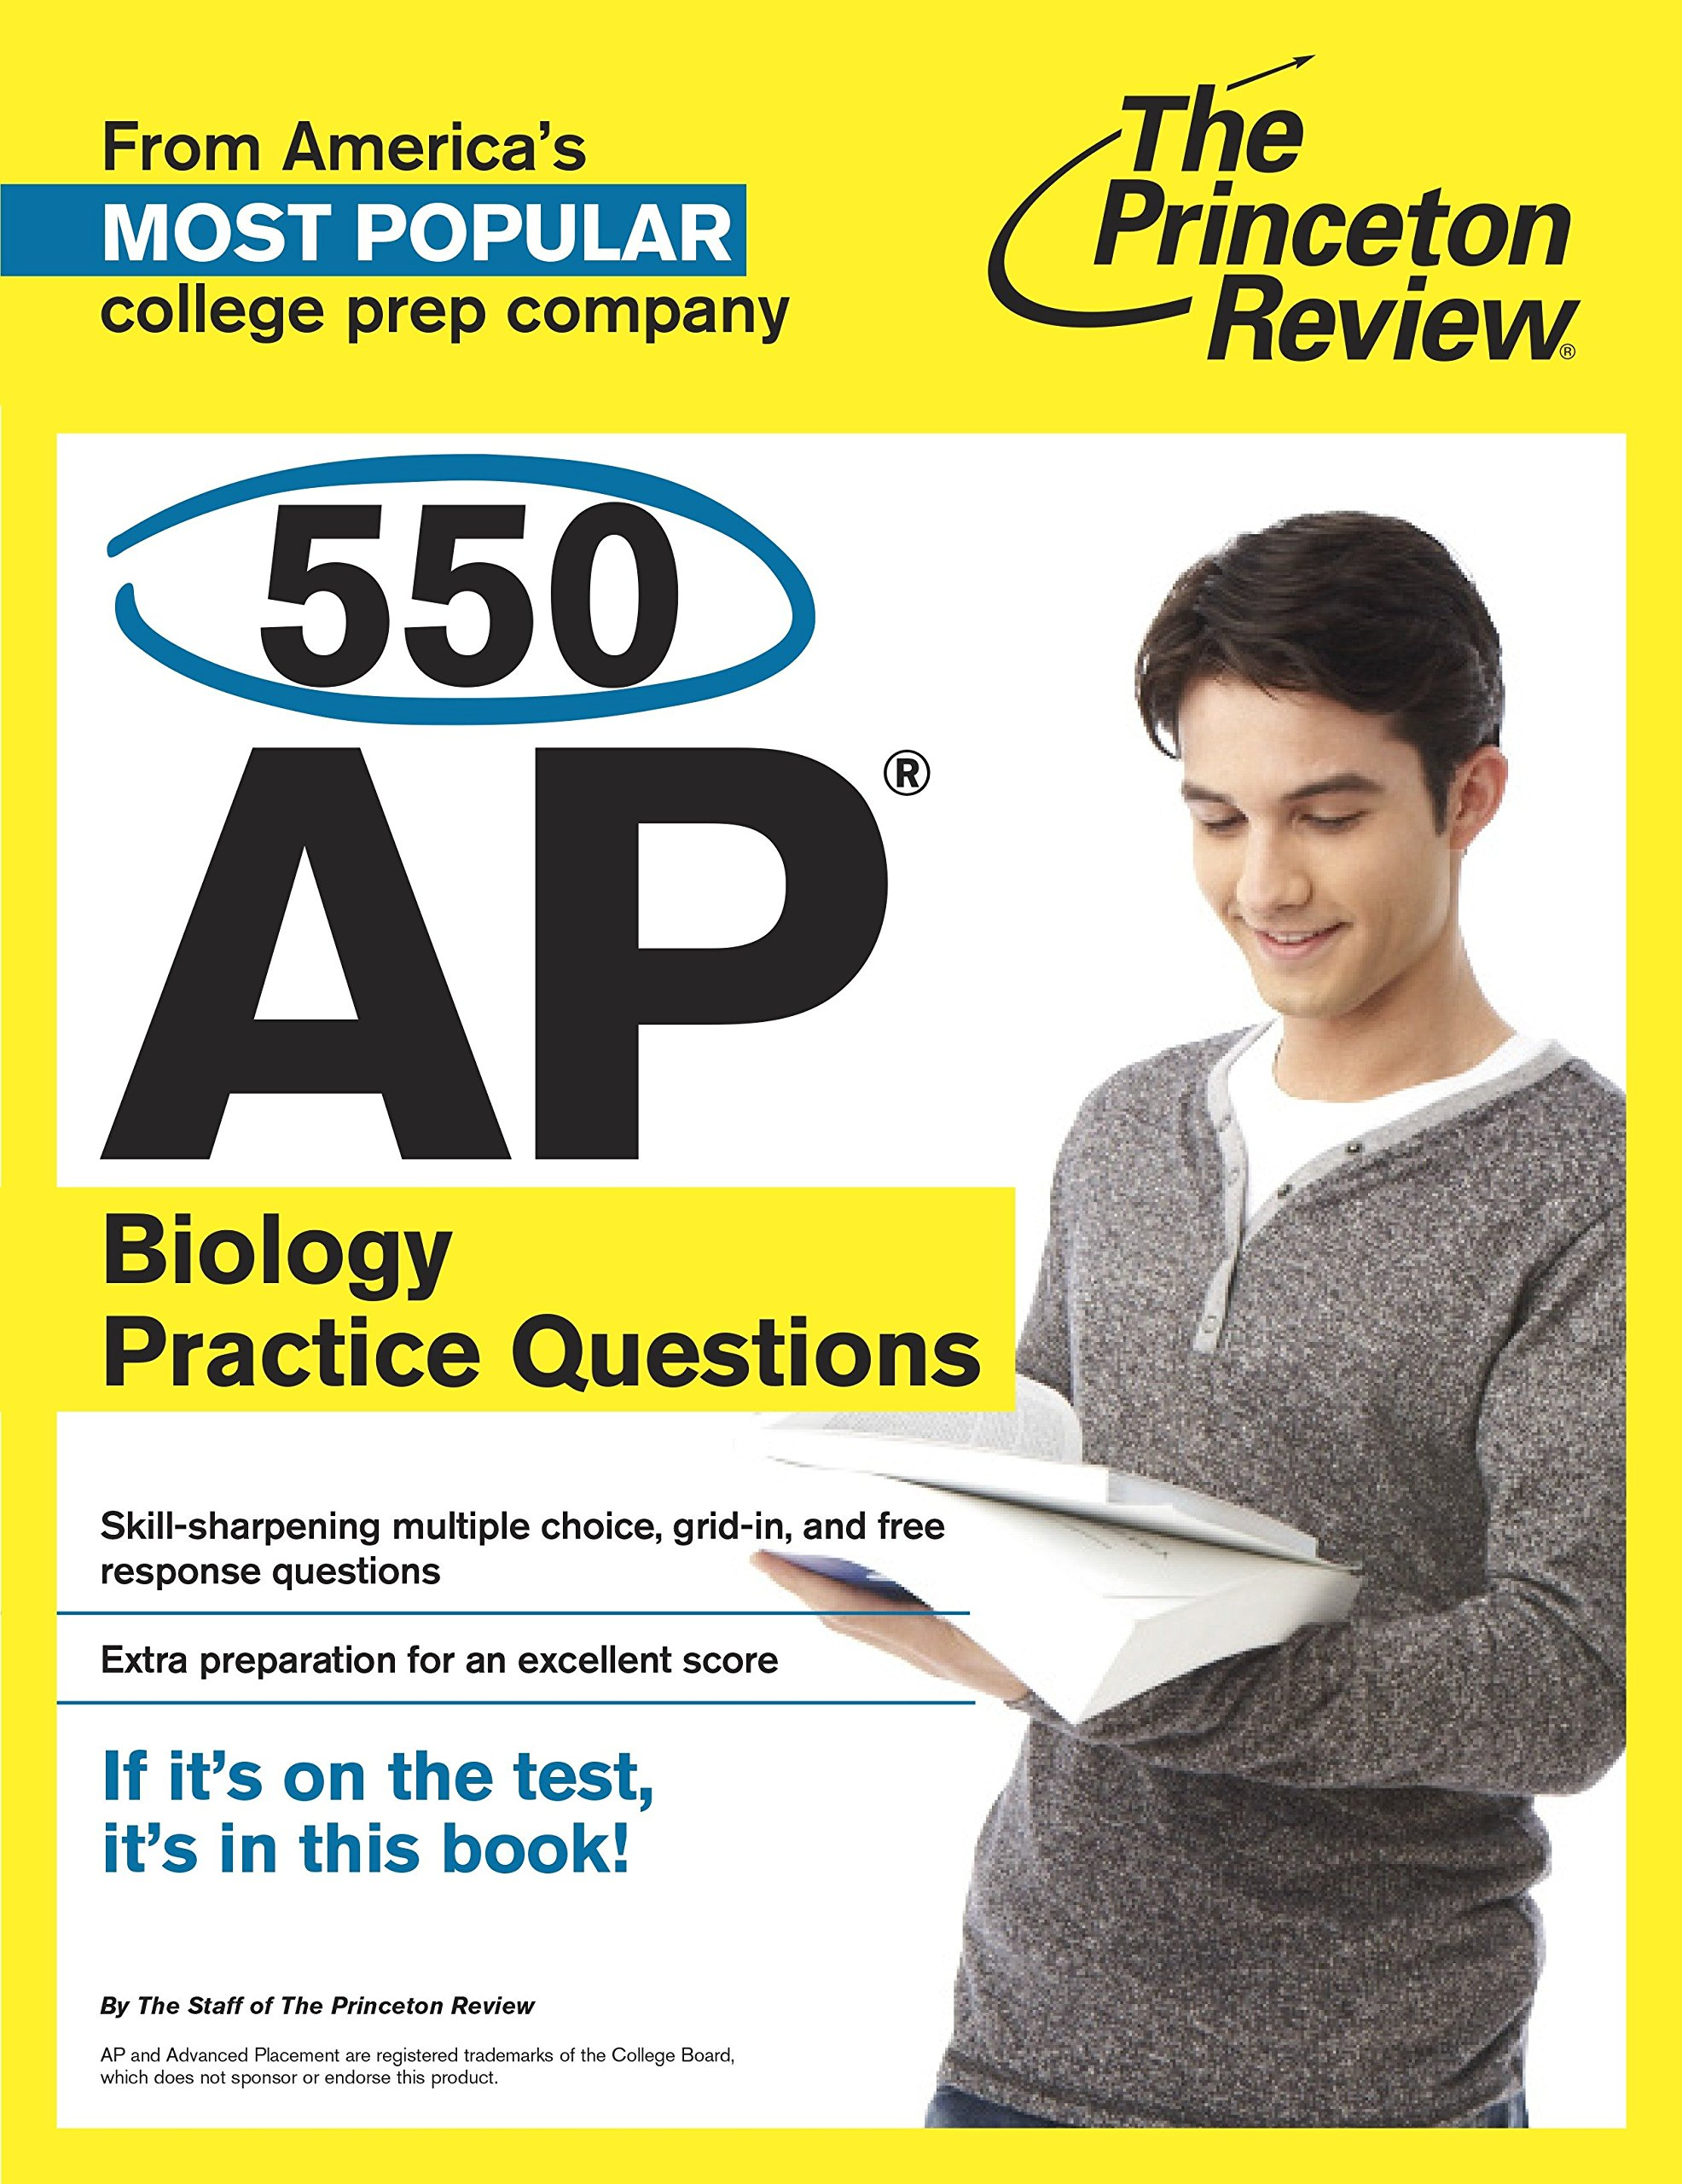 550 AP Biology Practice Questions: The Princeton Review